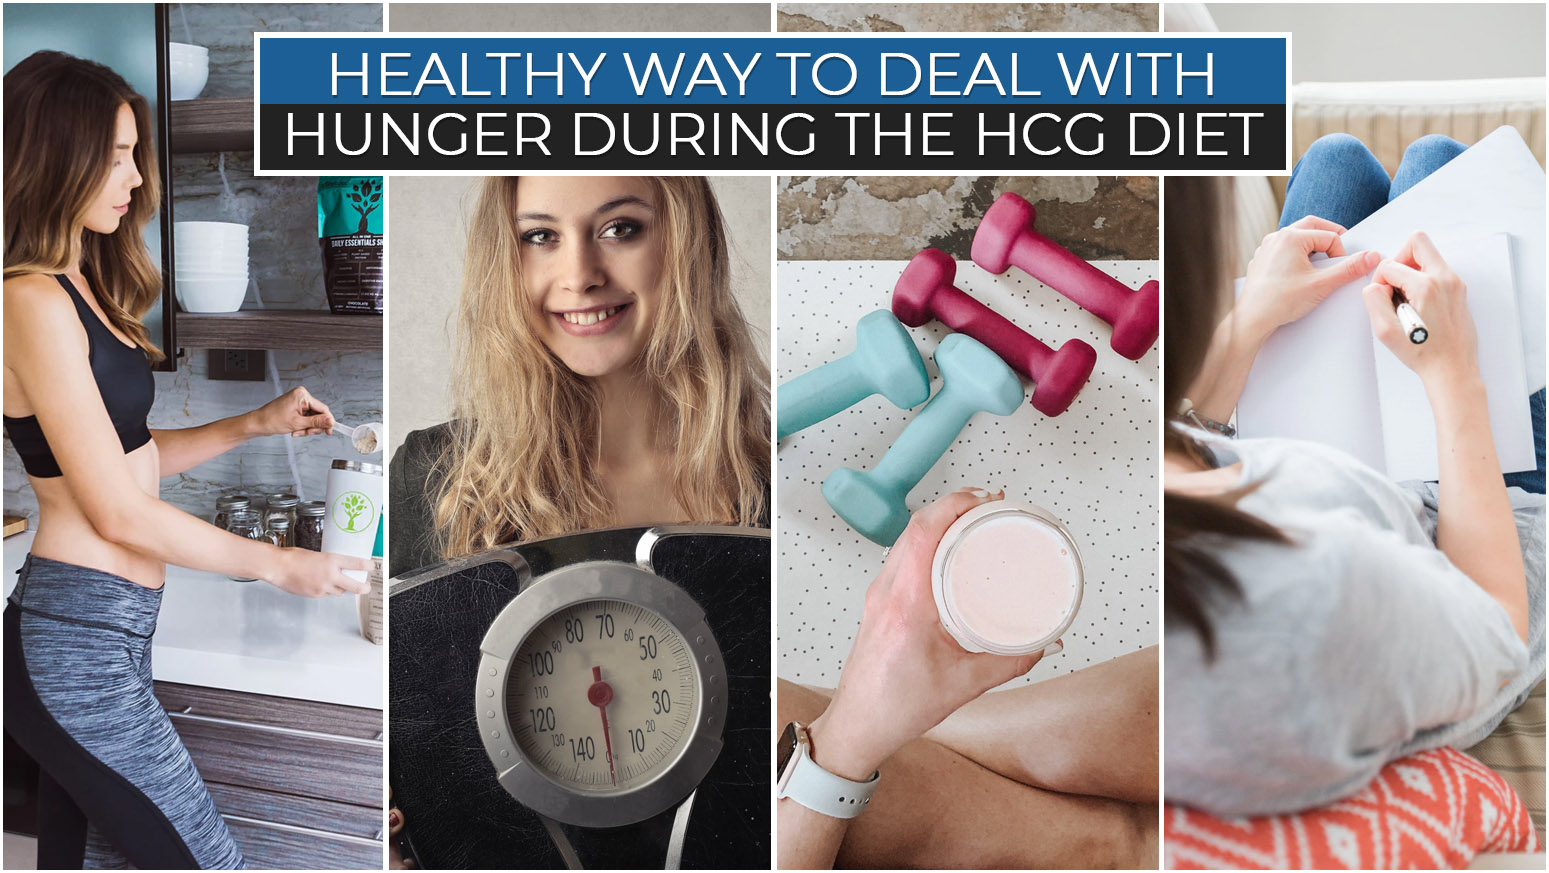 HEALTHY WAY TO DEAL WITH HUNGER DURING THE HCG DIET